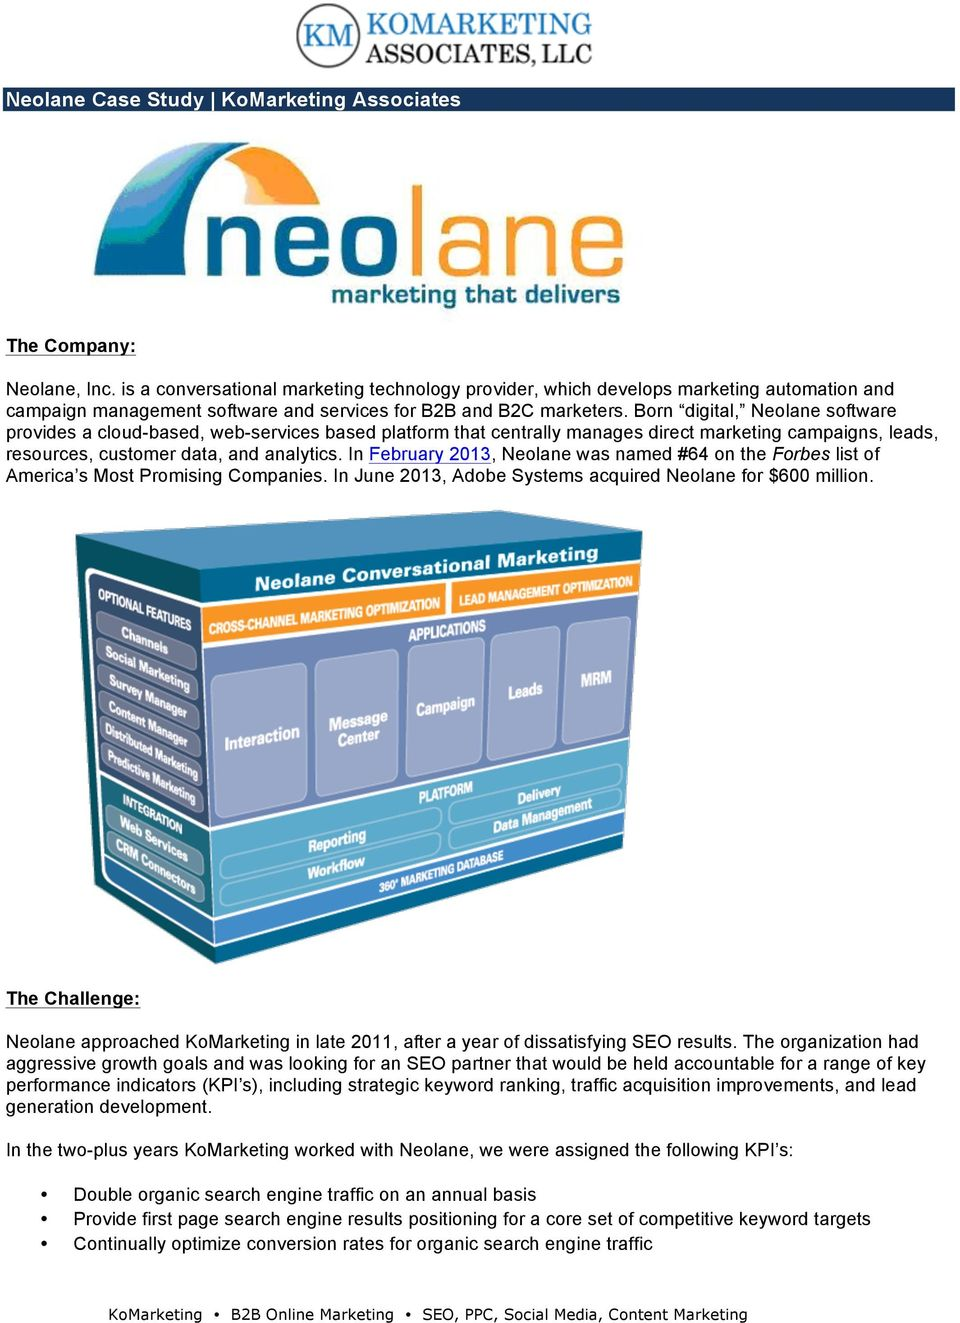 Born digital, Neolane software provides a cloud-based, web-services based platform that centrally manages direct marketing campaigns, leads, resources, customer data, and analytics.